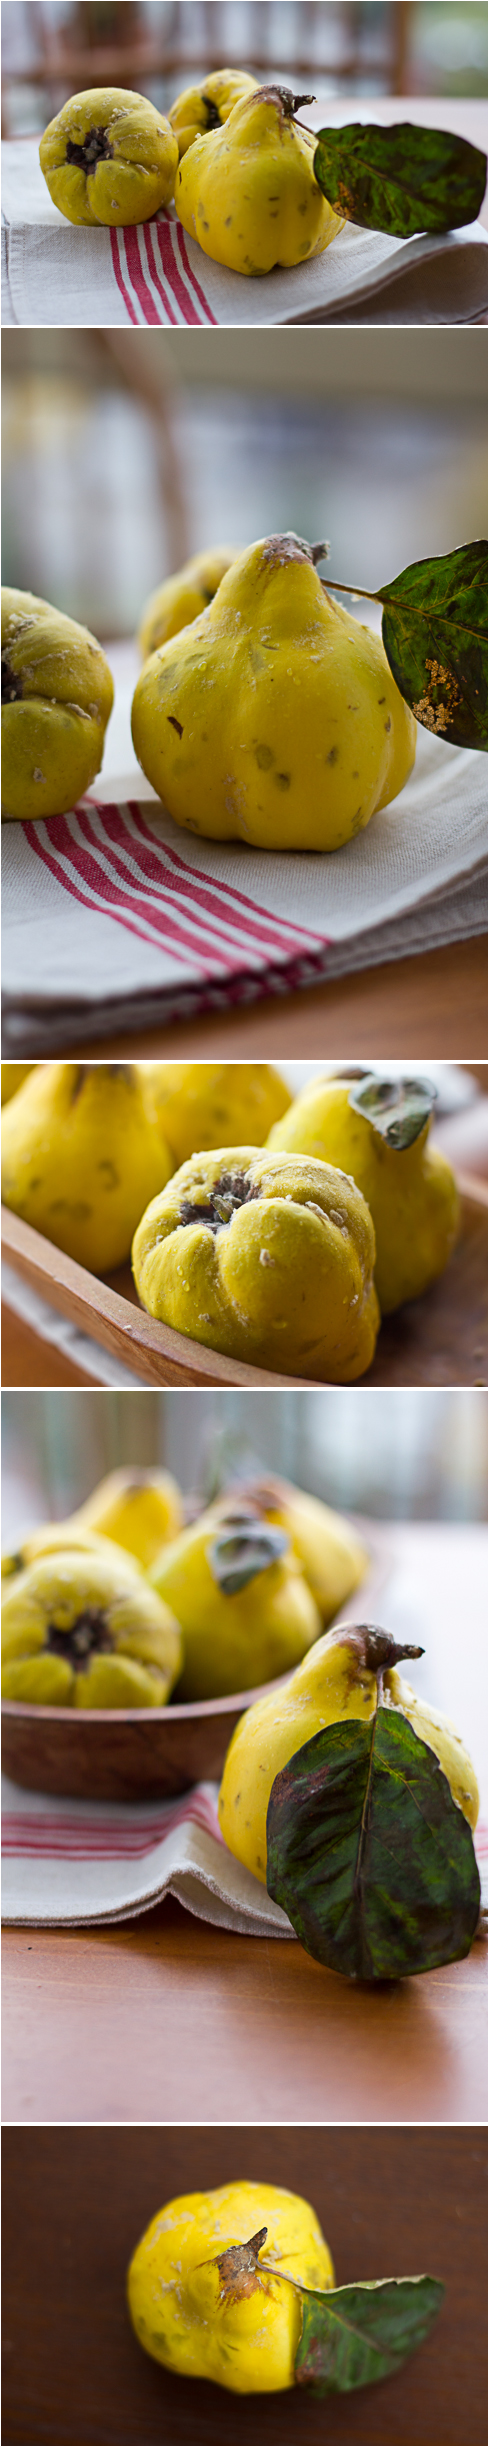 Quince. © 2011 Helena McMurdo